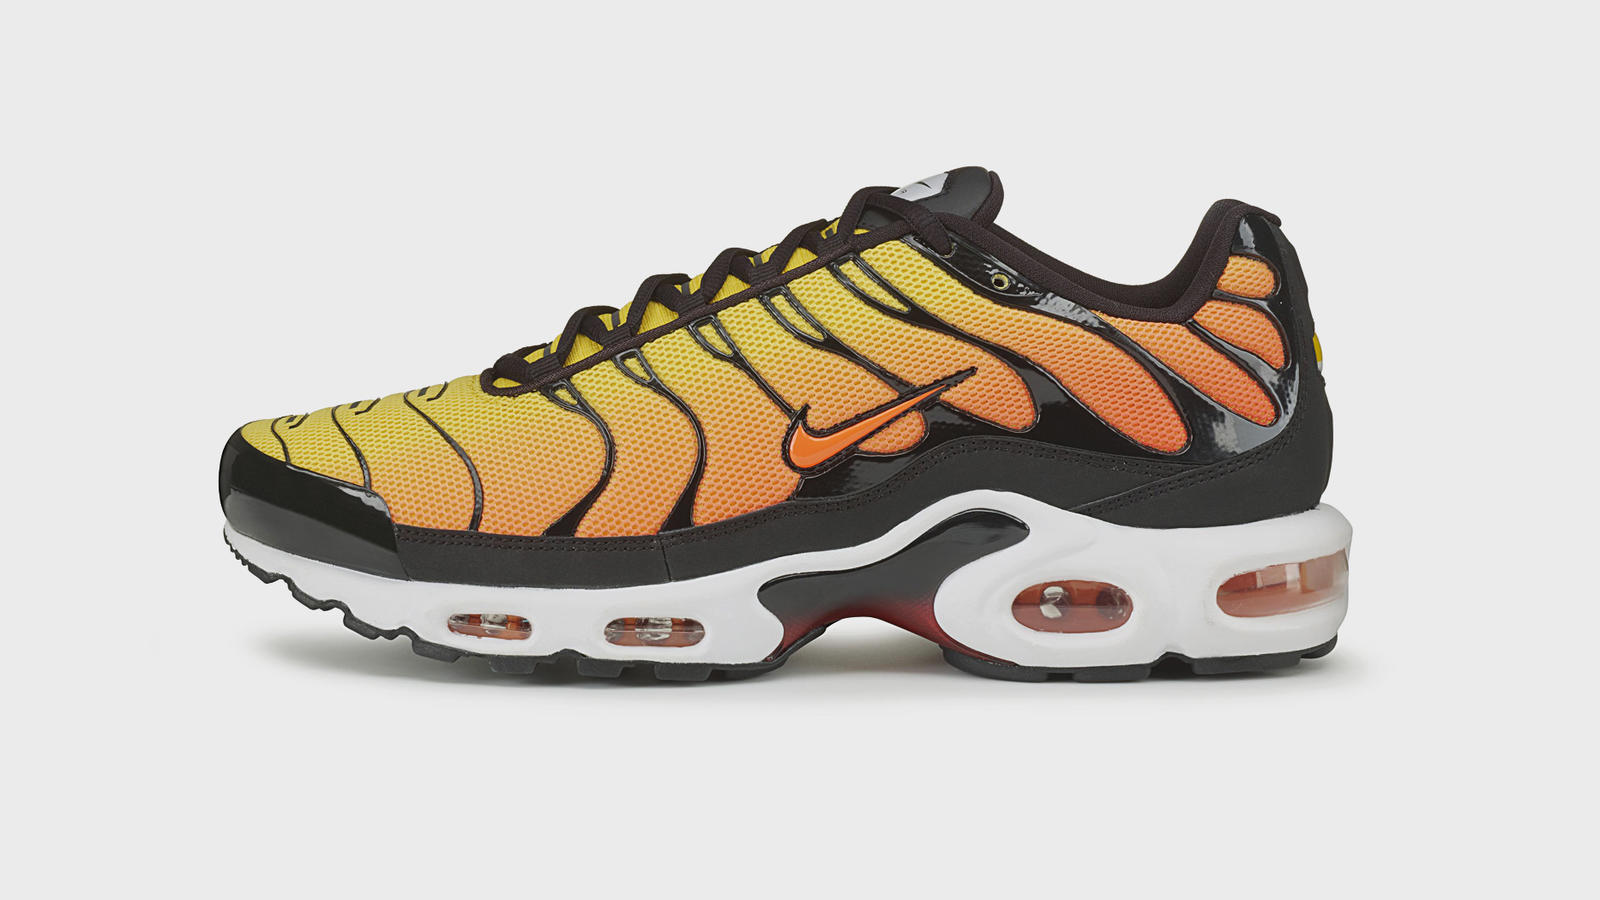 detailed look a4877 bfeaa The Untold Story of the Nike Air Max Plus 23